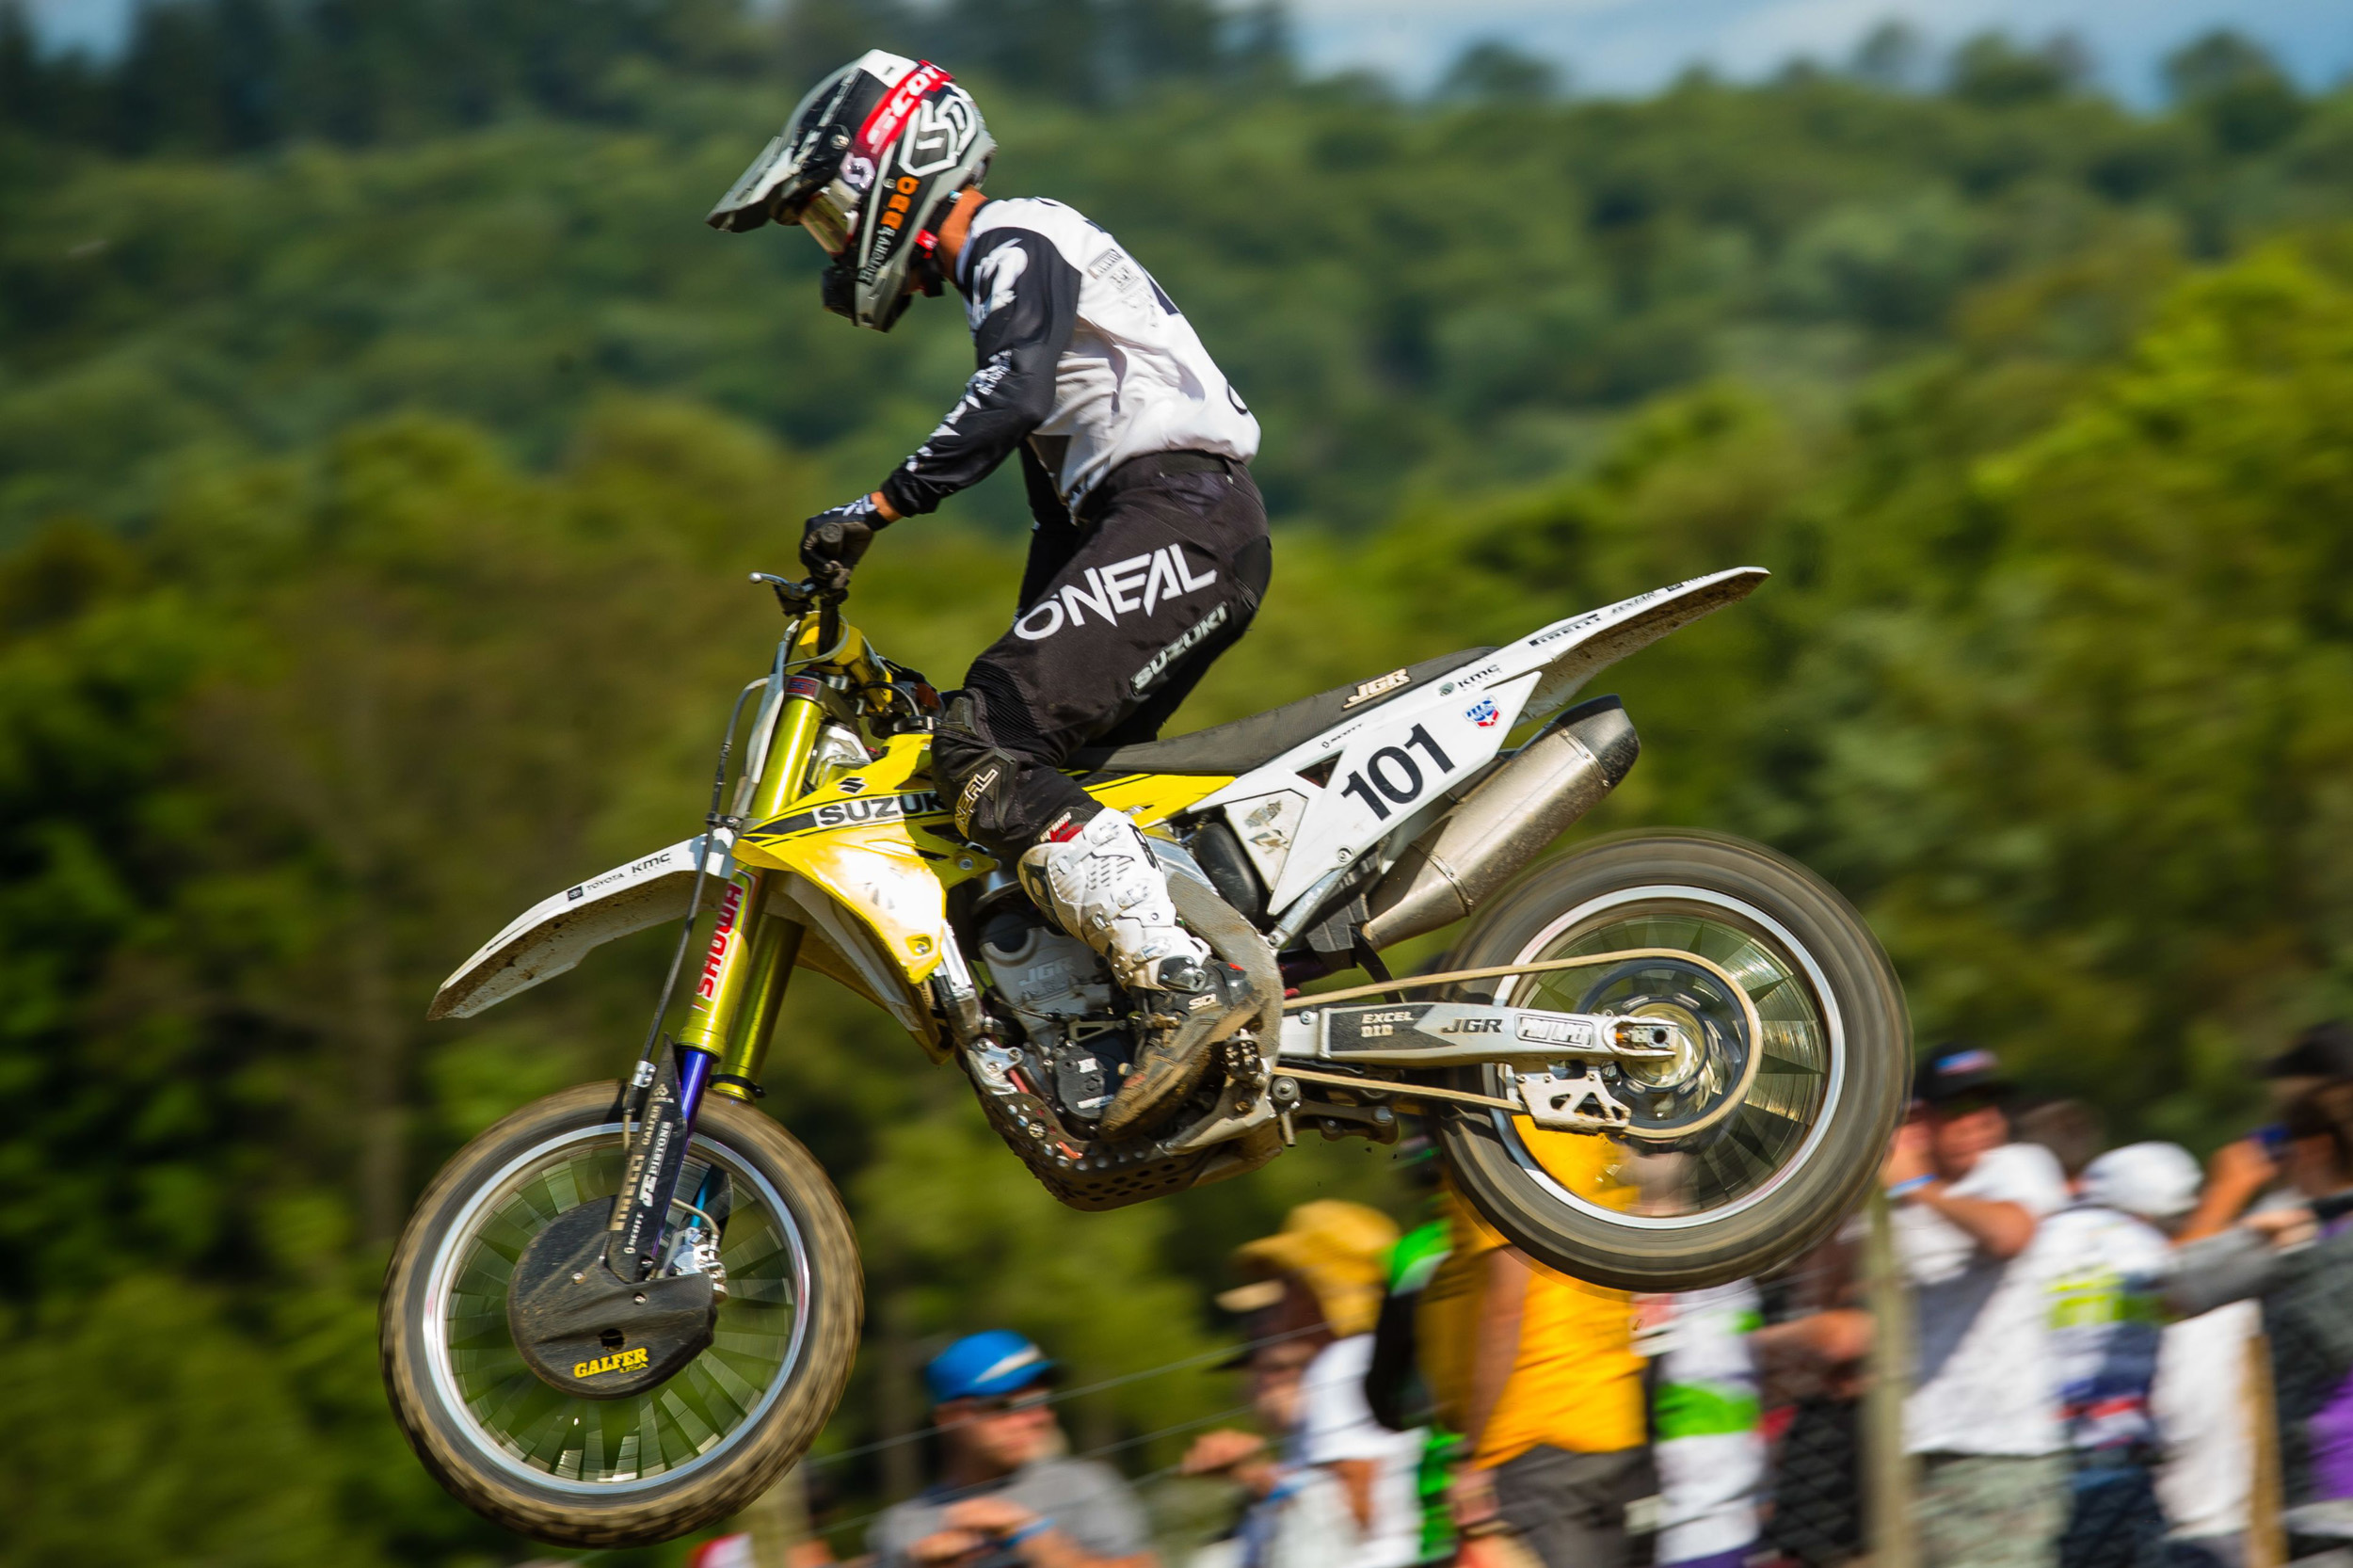 Freddie Noren (#101) fought-hard on his RM-Z450 to continue his points standing in the top-ten